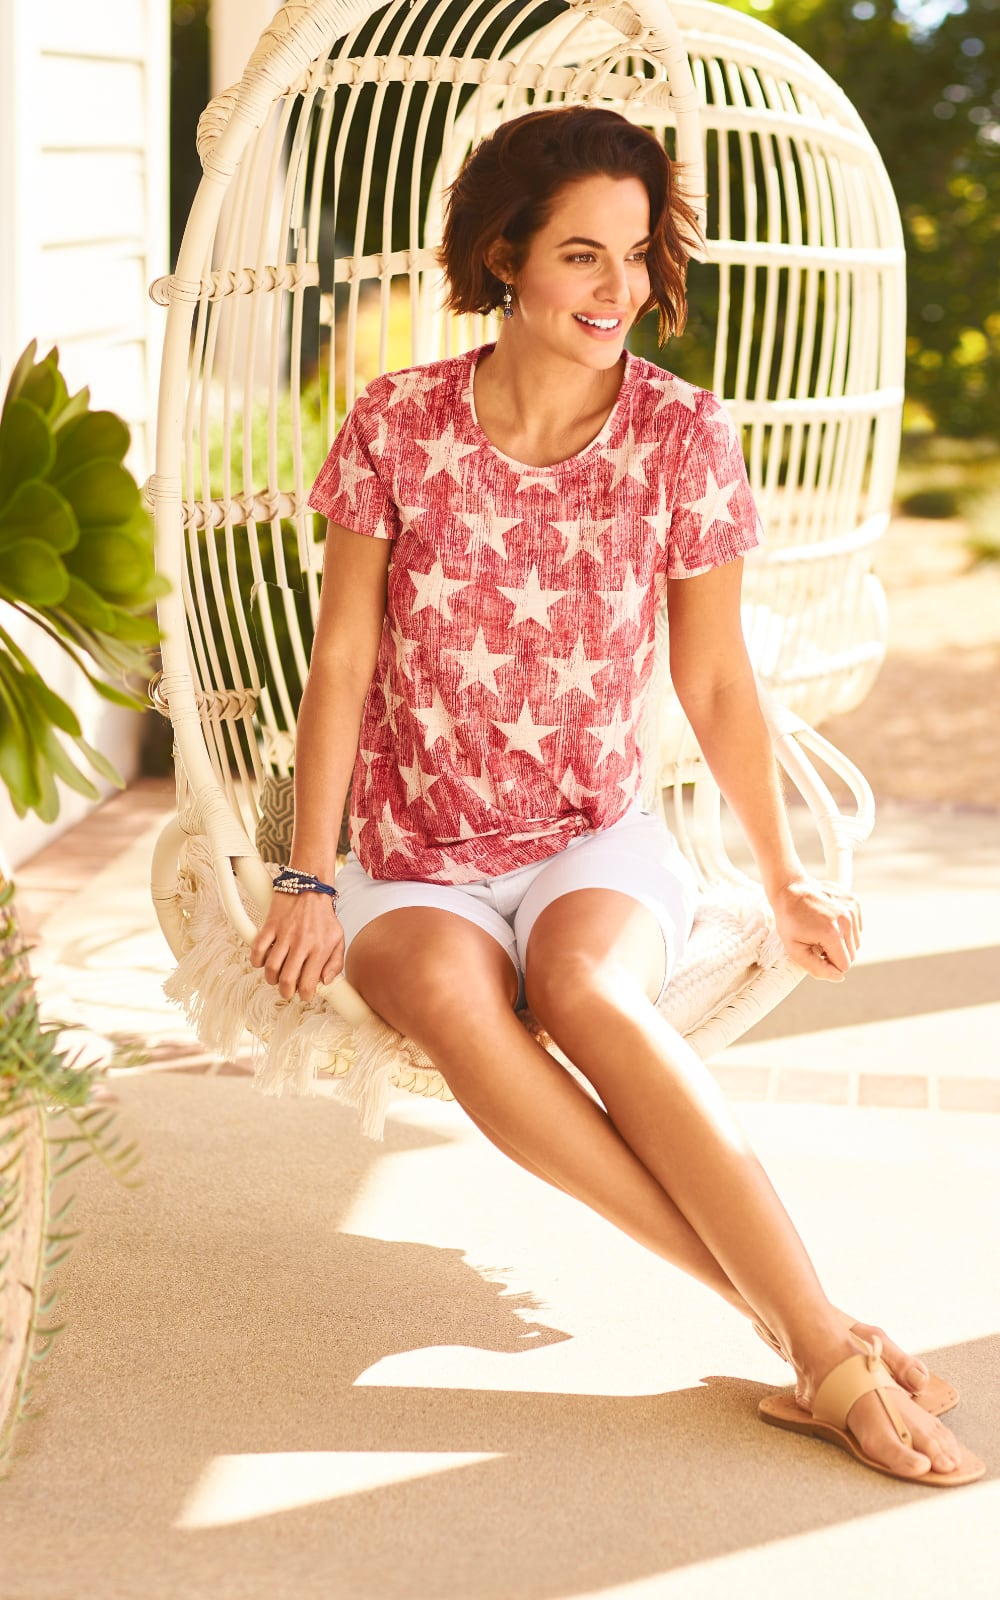 """Easy Care Linen Blend! Our """"Seeing Stars"""" Outfit featuring an Allover Stars Printed Tee and a Pull-On Signature Slimming Luxe Stretch Crop. """"Linen blend"""" consists of either linen and rayon or linen and cotton."""